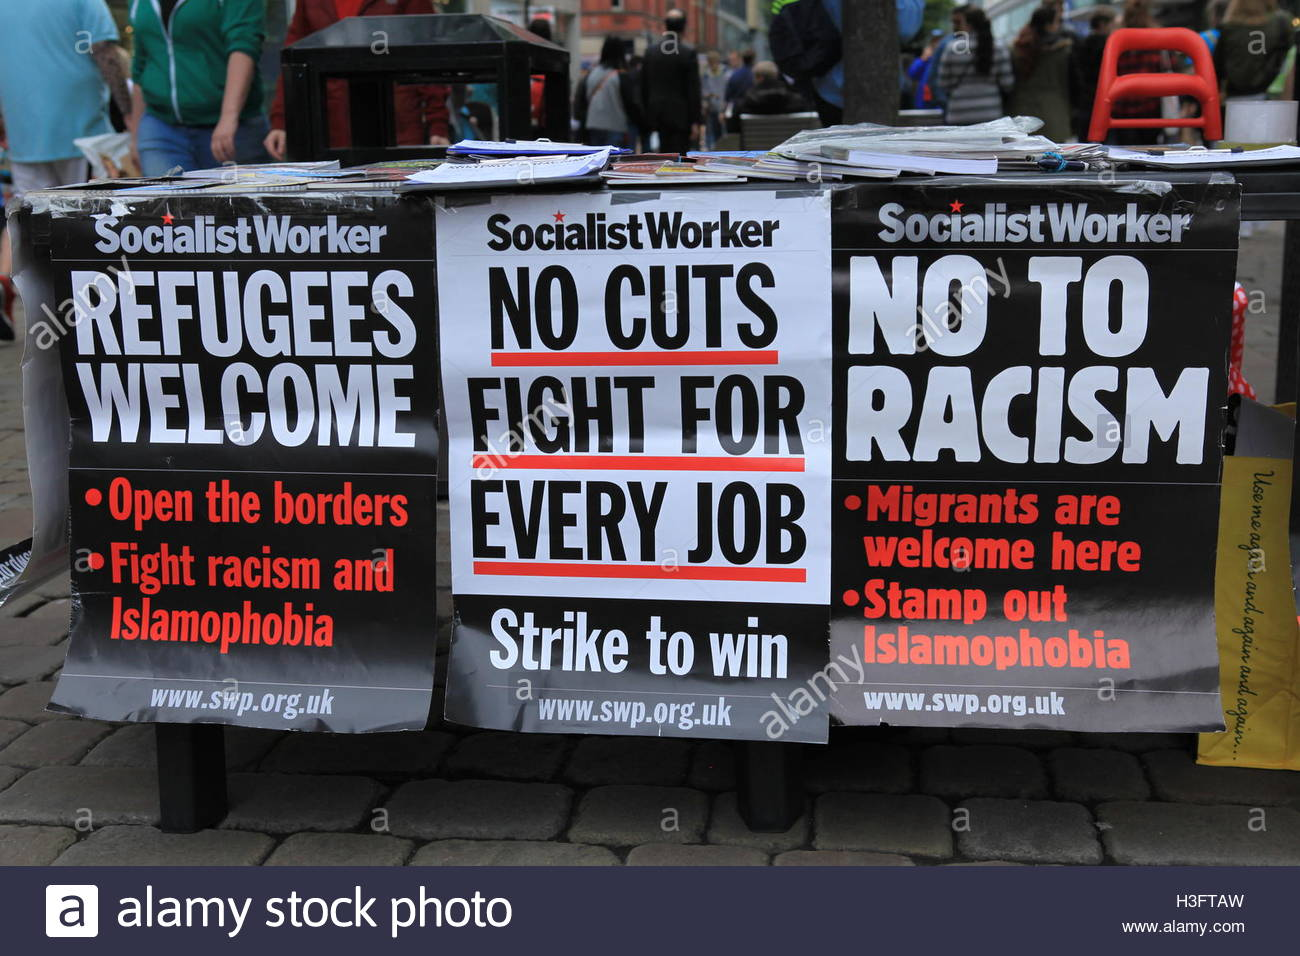 The Socialist Newspaper On The Streets Of Manchester Promoting Social Awareness Regarding Refugees, Racism And Employment - Stock Image